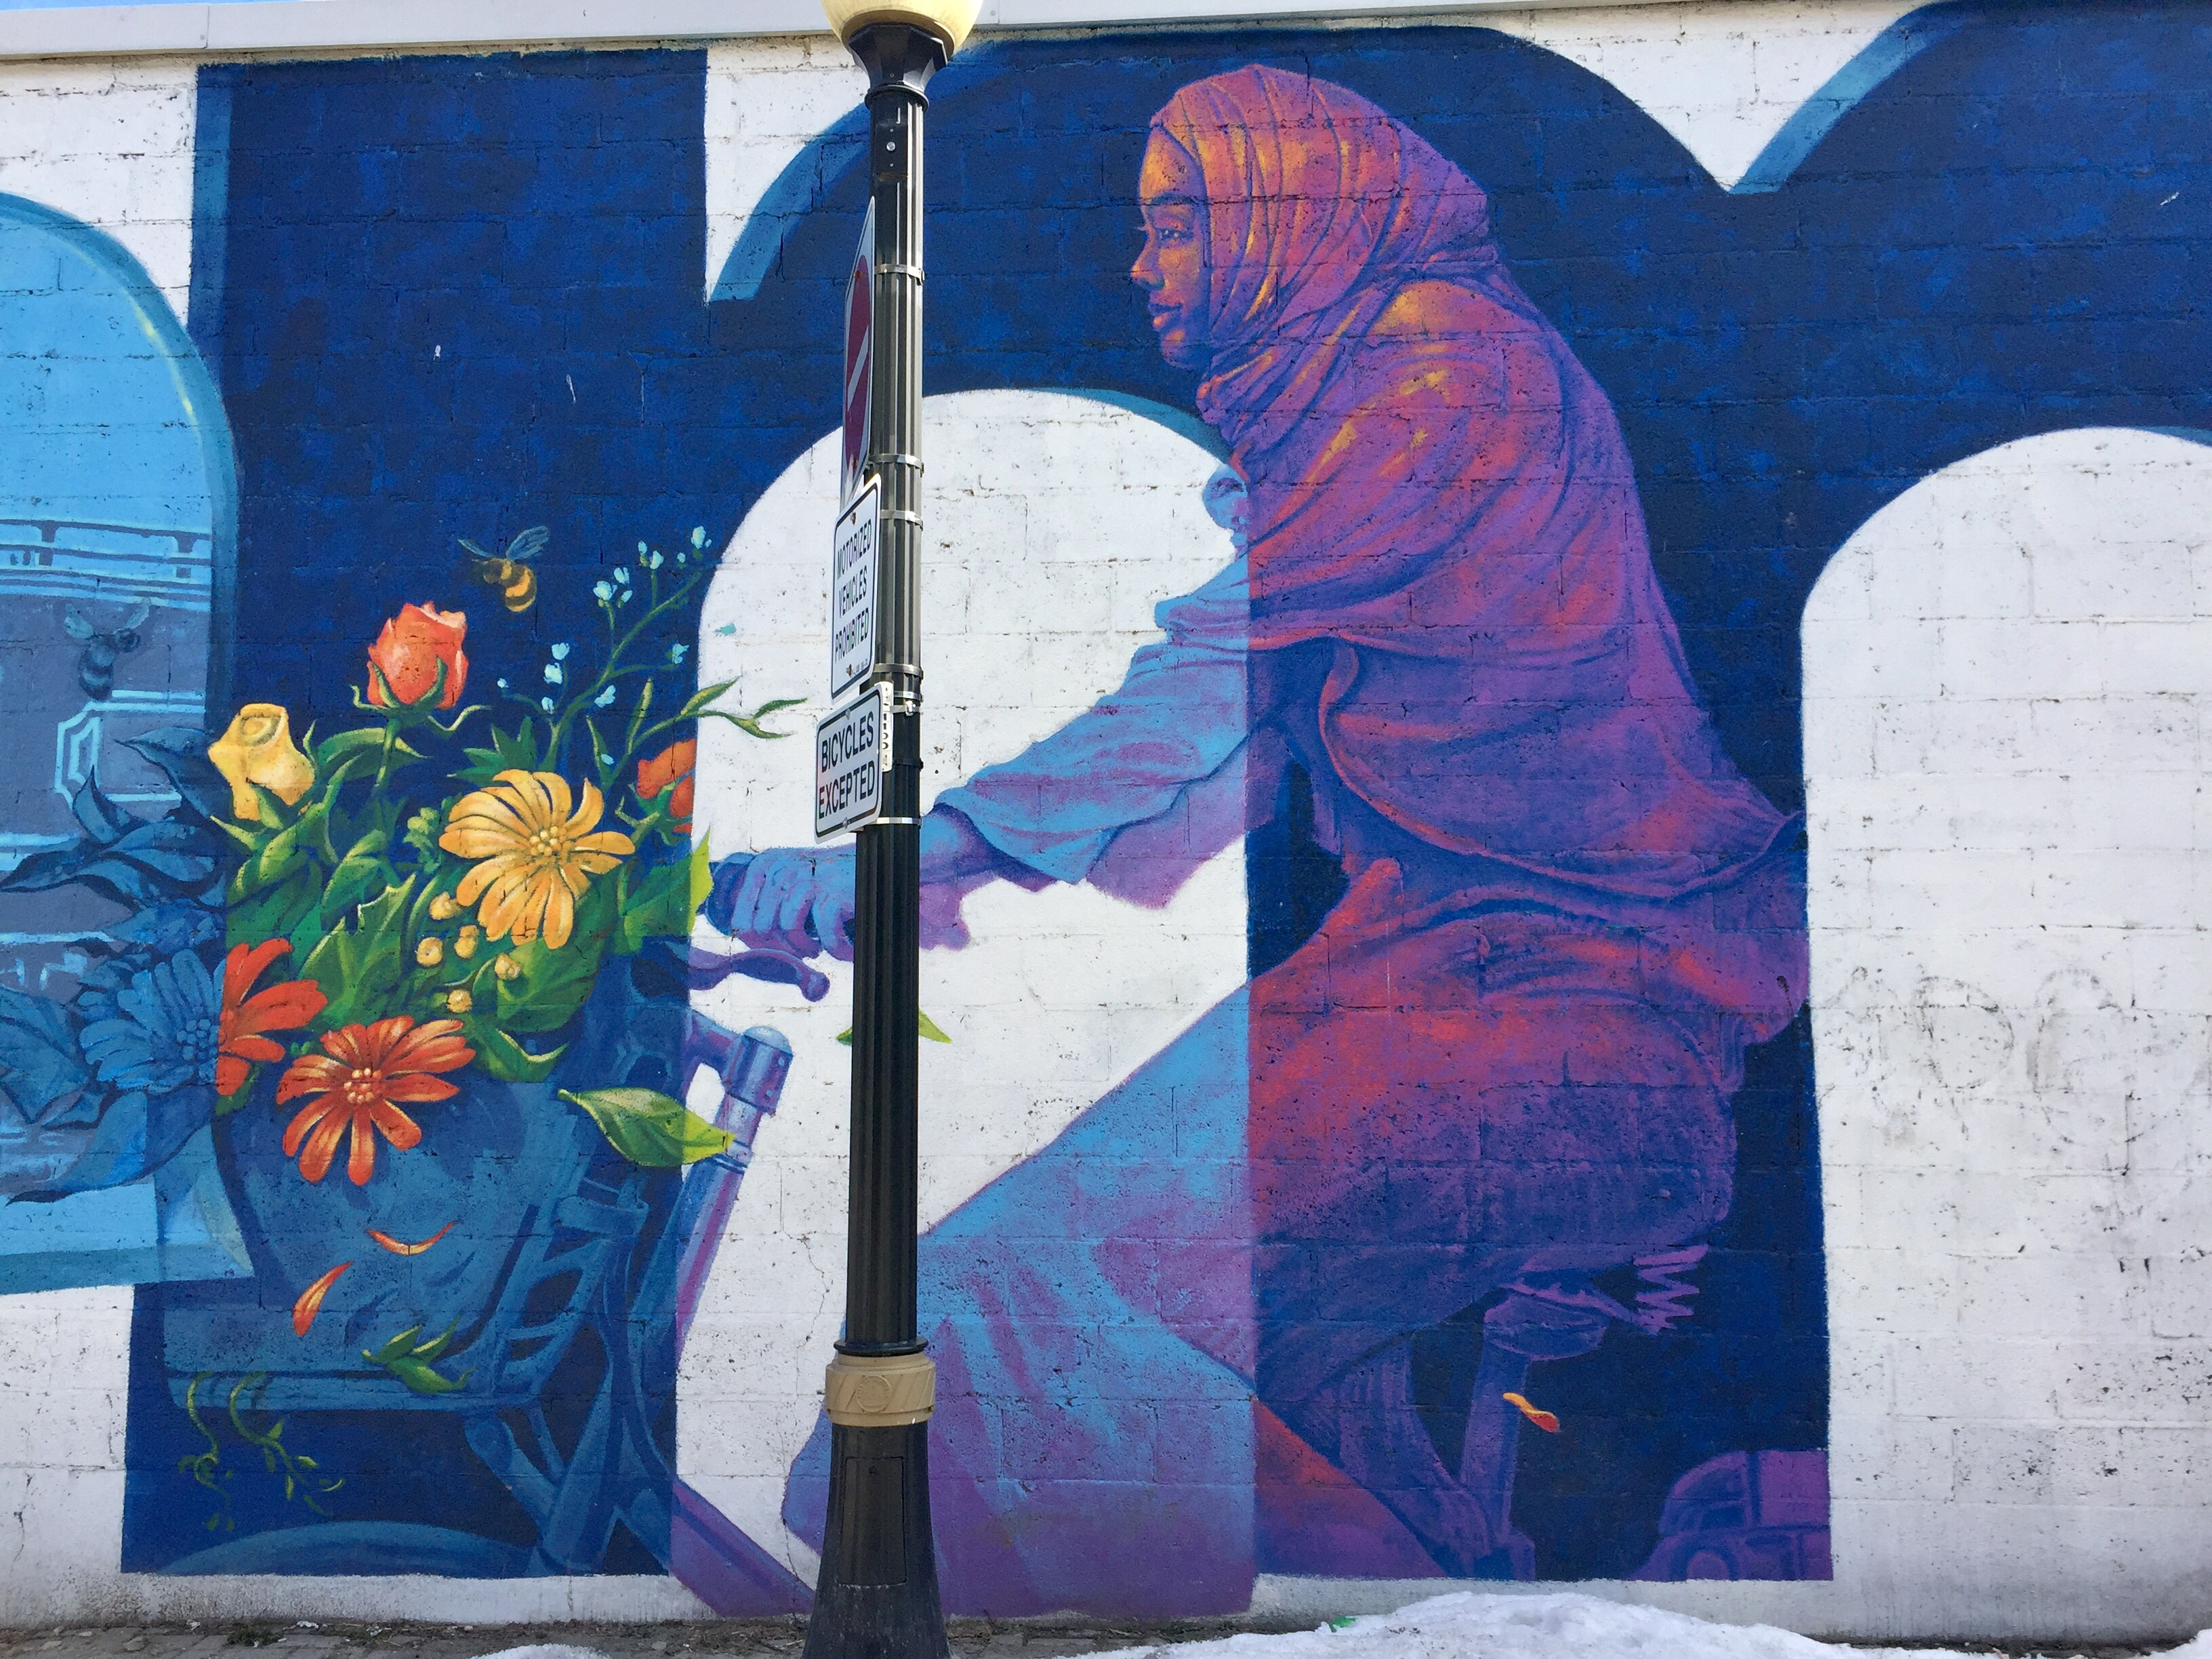 Colourful mural painting of a woman riding a bicycle. She is wearing a headscarf and has a basket full of yellow and orange flowers.